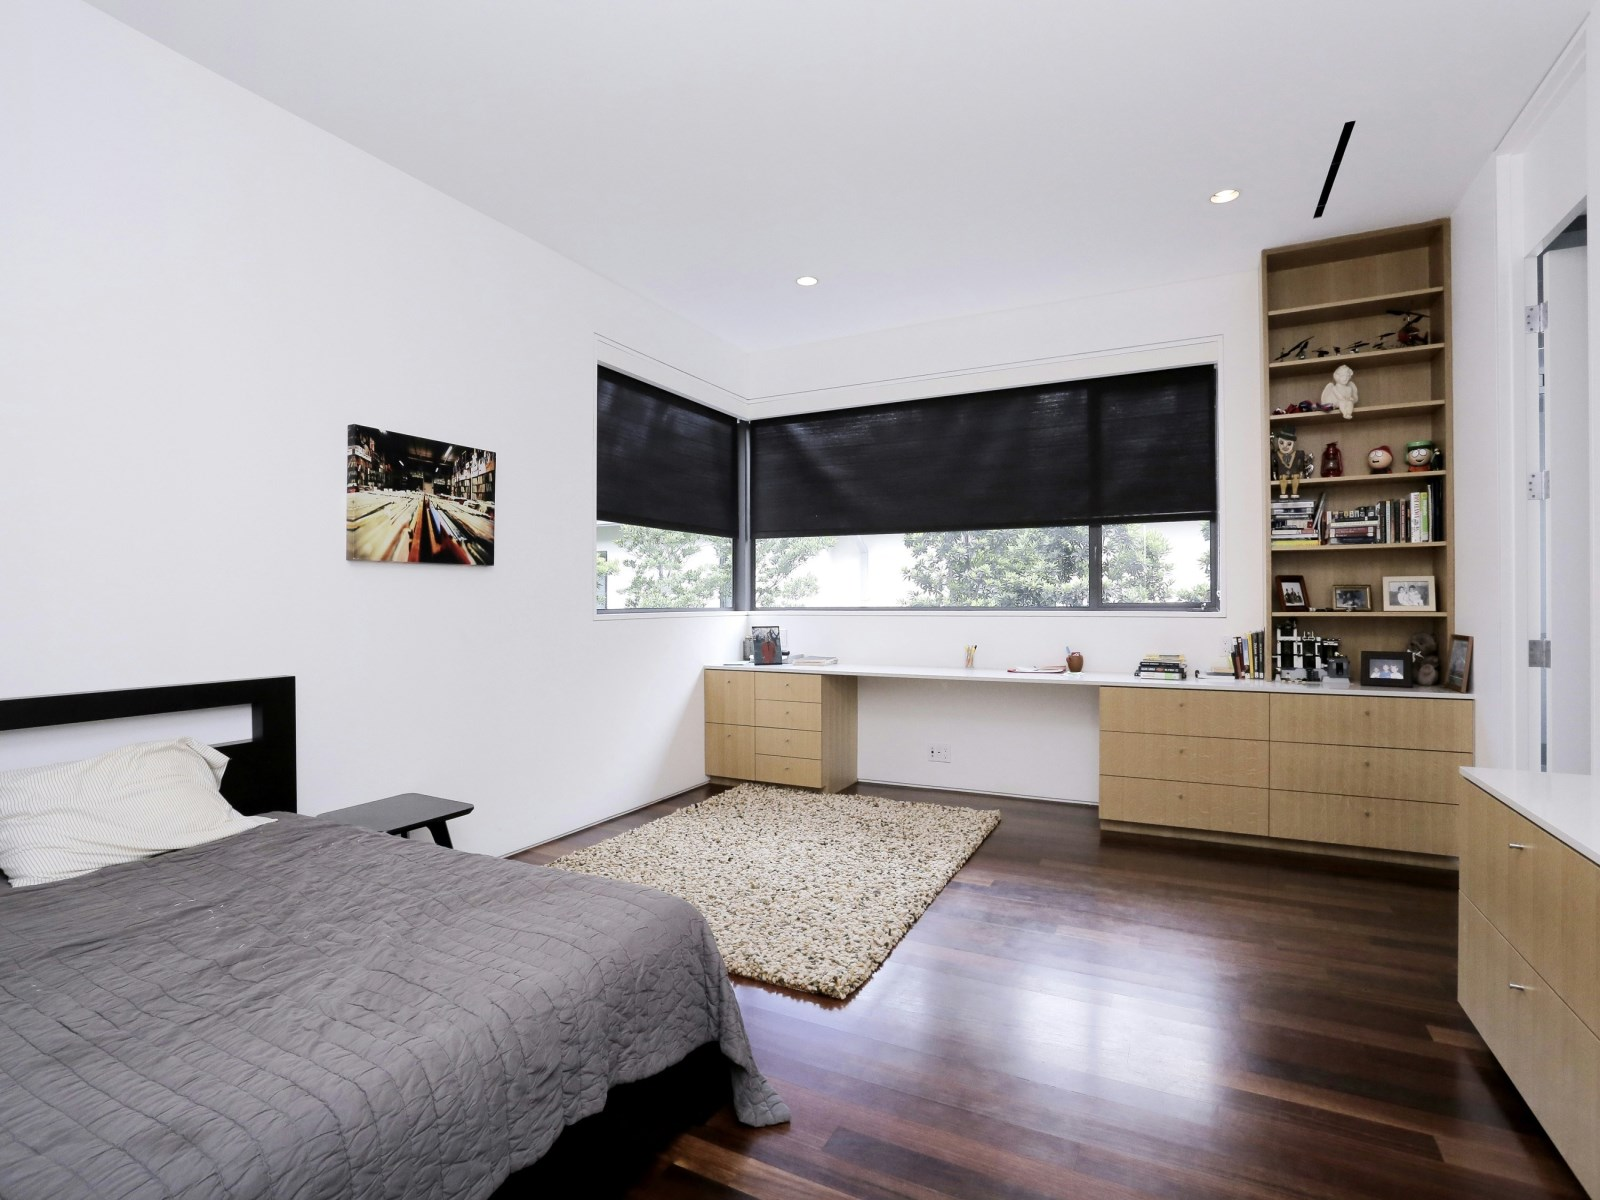 Bedroom With Corner Window - A home with formidable architecture and a light interior